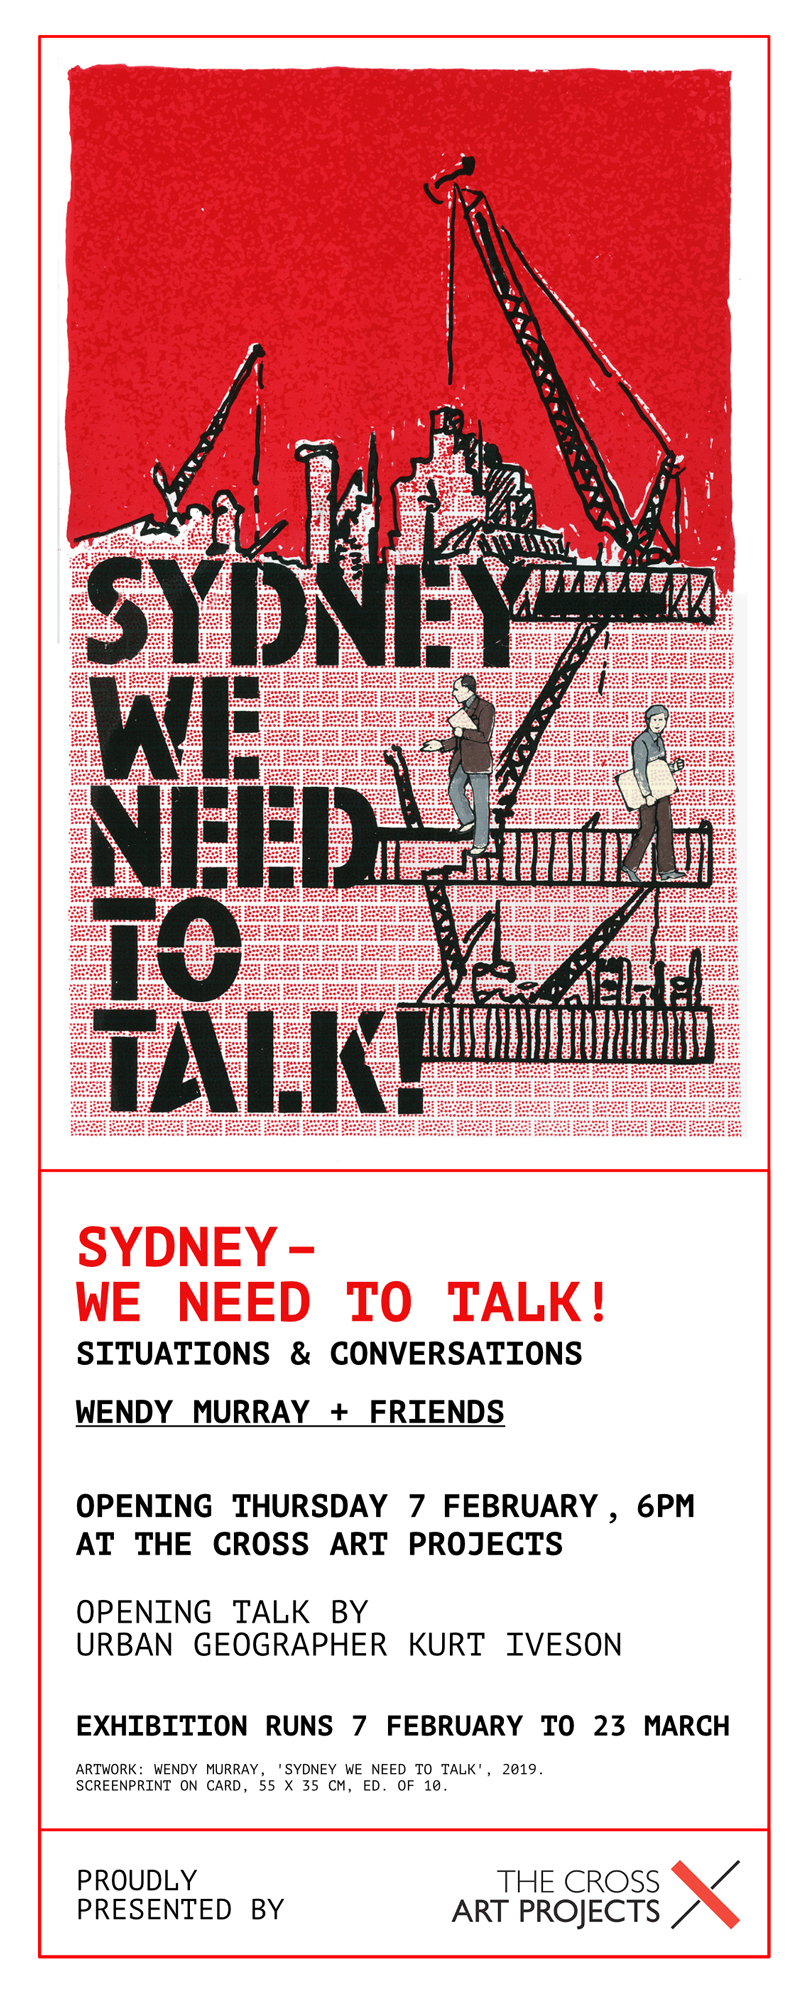 Sydney - We Need to Talk - There are still a few days left to catch Wendy Murray's exhibition Sydney - We Need to Talk at Cross Art Projects in Sydney. The exhibition features some of the illustrations that Wendy made for the book.Kurt Iveson, one of the authors of Sydney - We Need to Talk, spoke at the launch of the exhibition. Taking inspiration from one of Wendy's works, he wrote a letter to Sydney. Here it is…